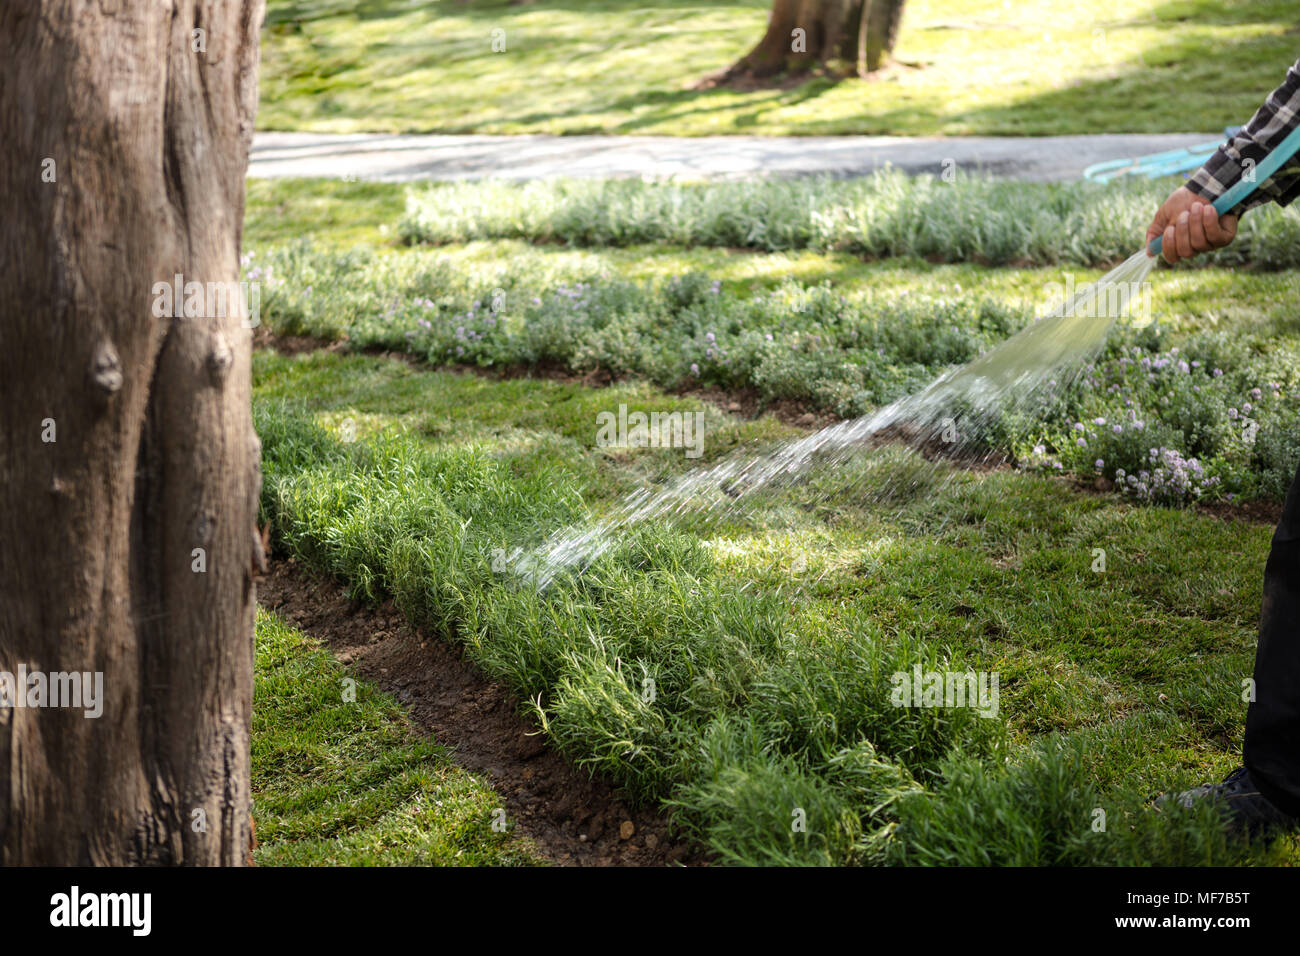 Professional gardener hand watering the plants with a garden hose in spring day - Stock Image